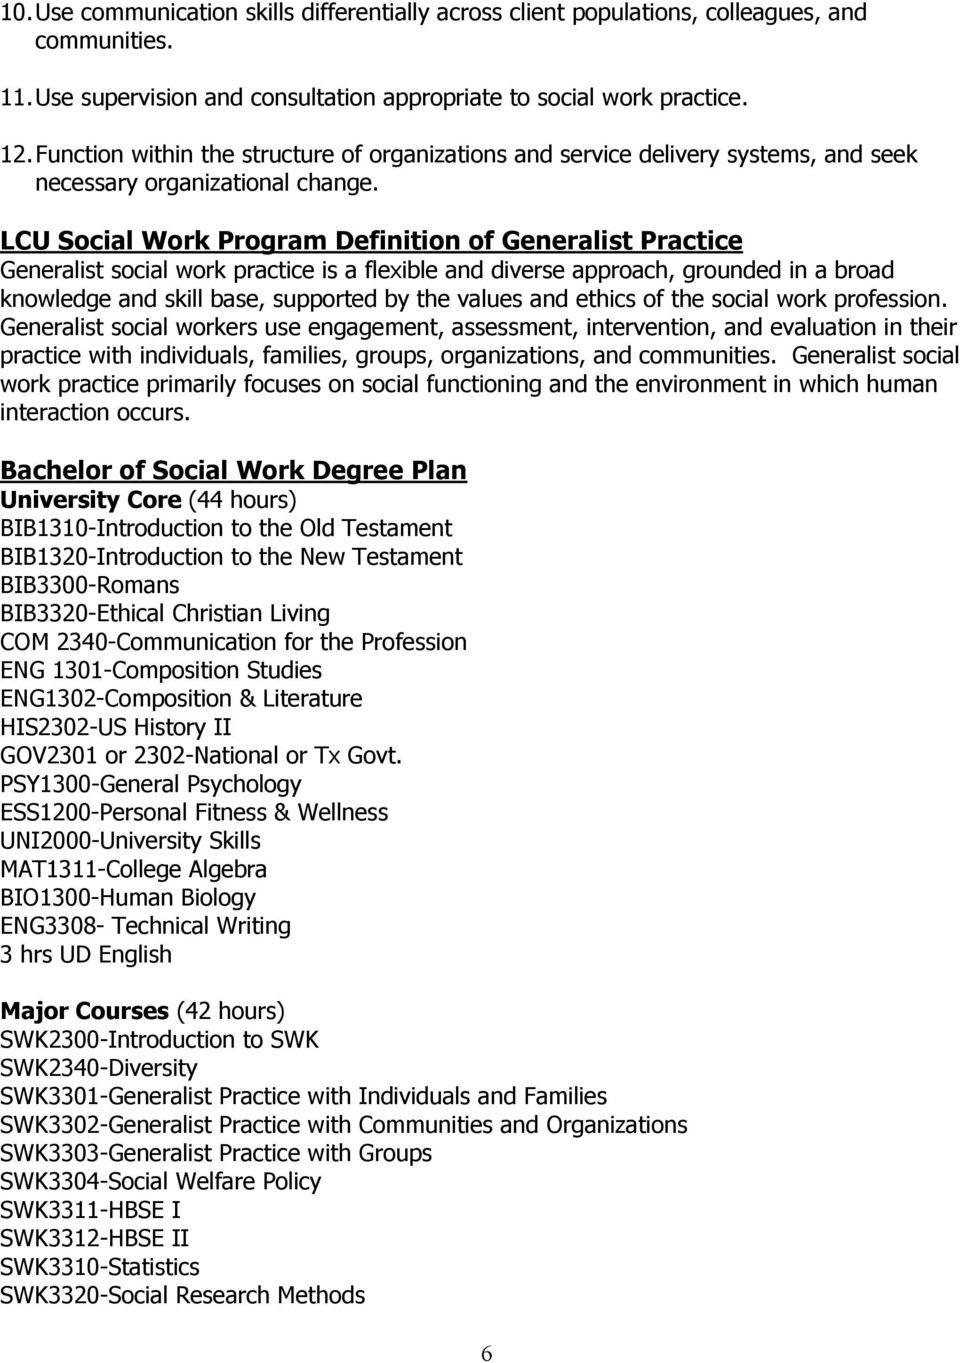 LCU Social Work Program Definition of Generalist Practice Generalist social work practice is a flexible and diverse approach, grounded in a broad knowledge and skill base, supported by the values and